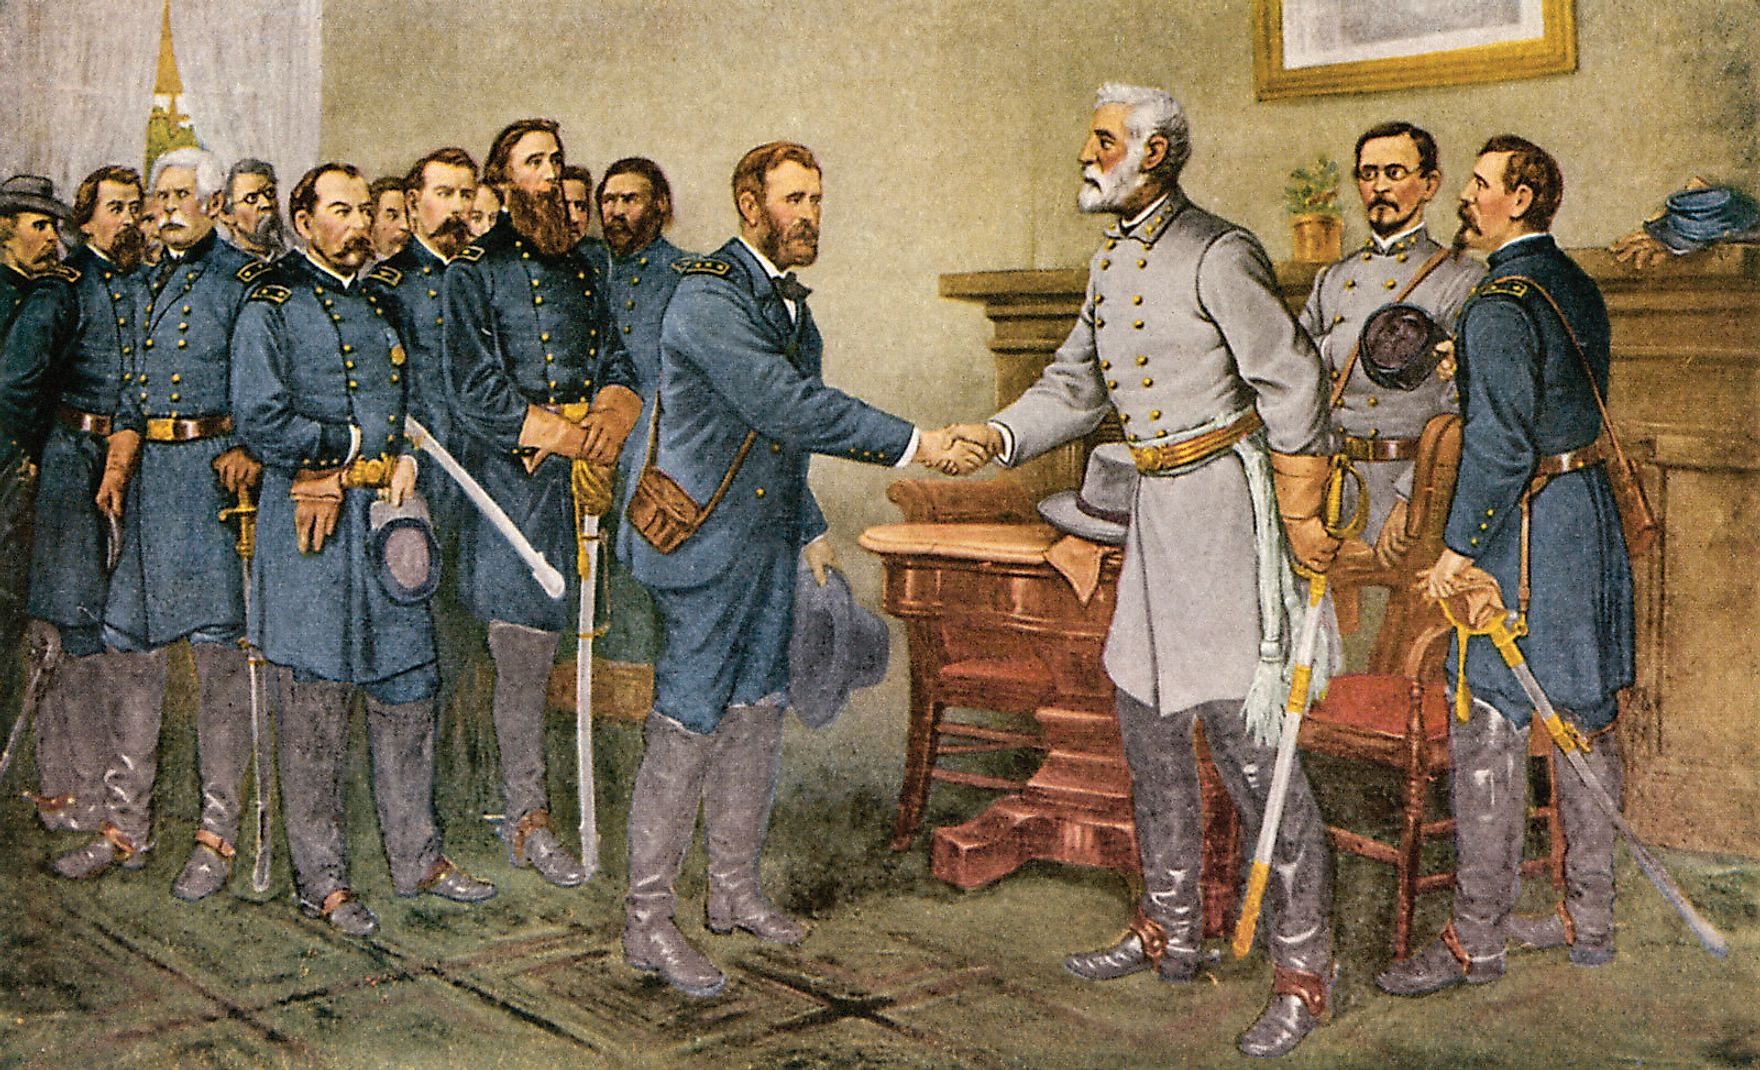 Surrender of General Lee to General Grant at Appomattox Court House during the Third Battle of Petersburg. Image credit: Thomas Nast / Public domain